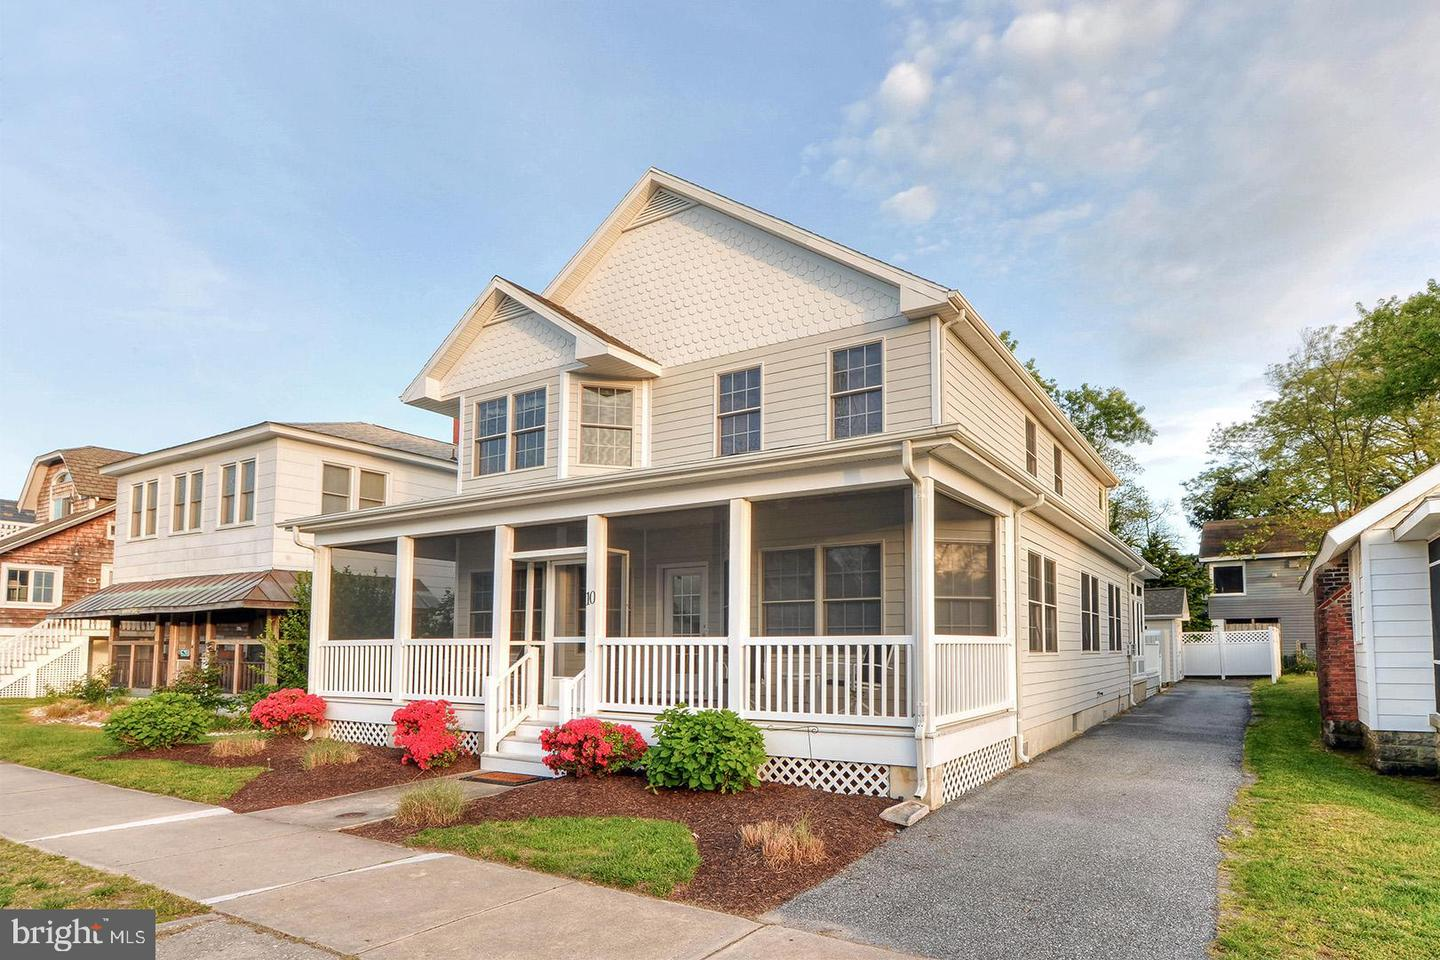 DESU139874-301711163898-2019-05-16-07-32-35 10 New Castle St | Rehoboth Beach, DE Real Estate For Sale | MLS# Desu139874  - Rehoboth Beach Real Estate - Bryce Lingo and Shaun Tull REALTORS, Rehoboth Beach, Delaware